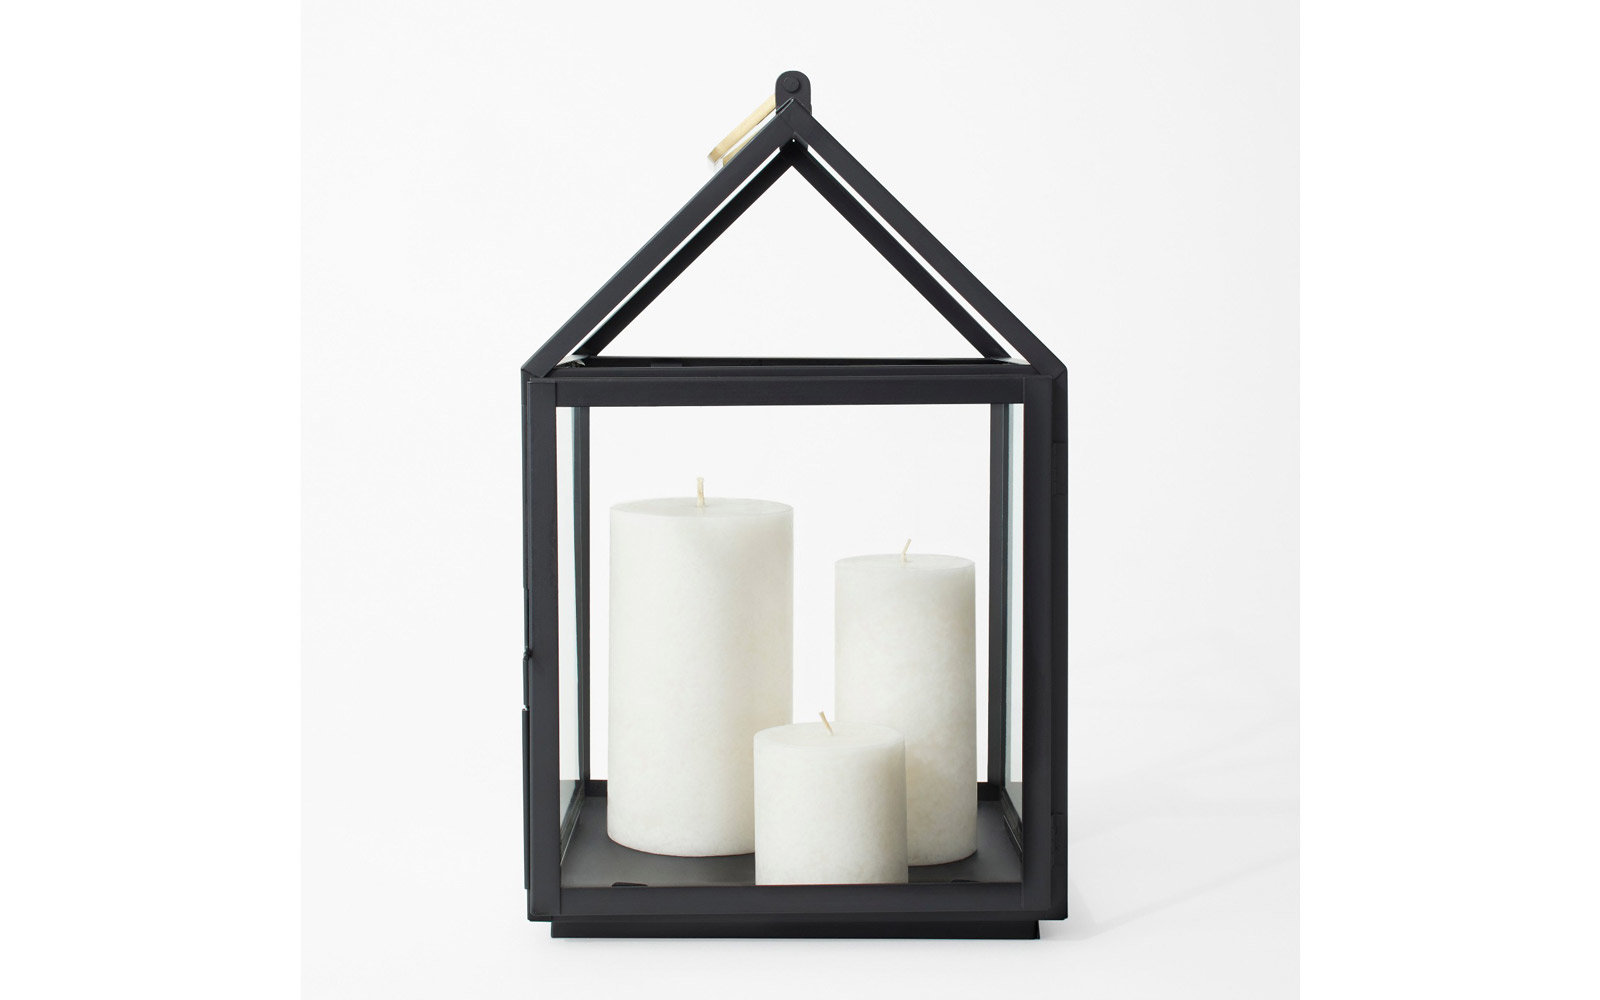 Hearth & Hand with Magnolia: Medium House Lantern